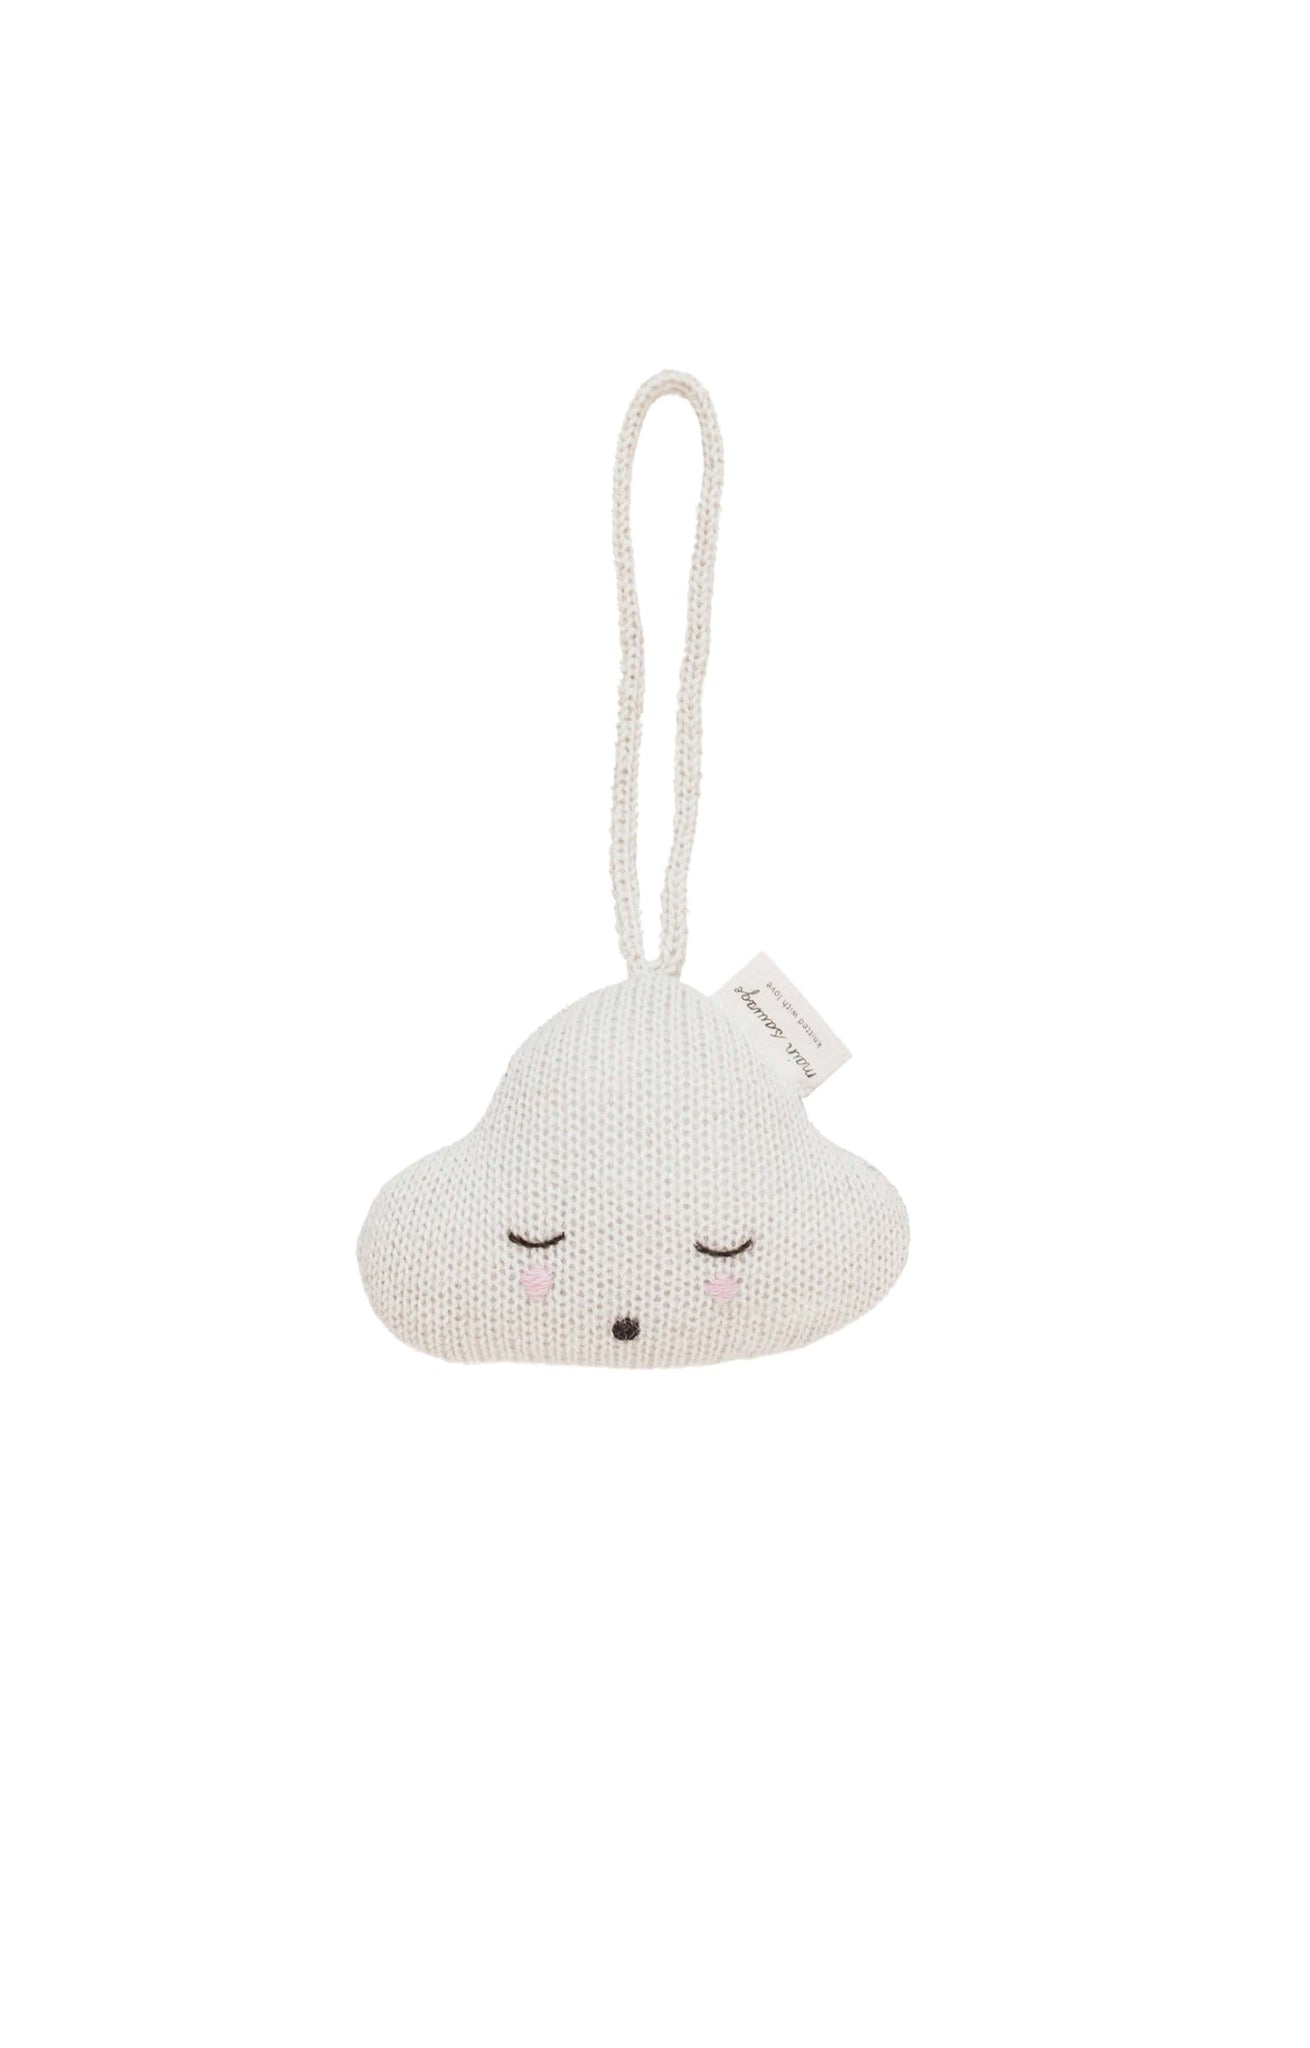 Main Sauvage cloud hanging rattle - Hello Little Birdie